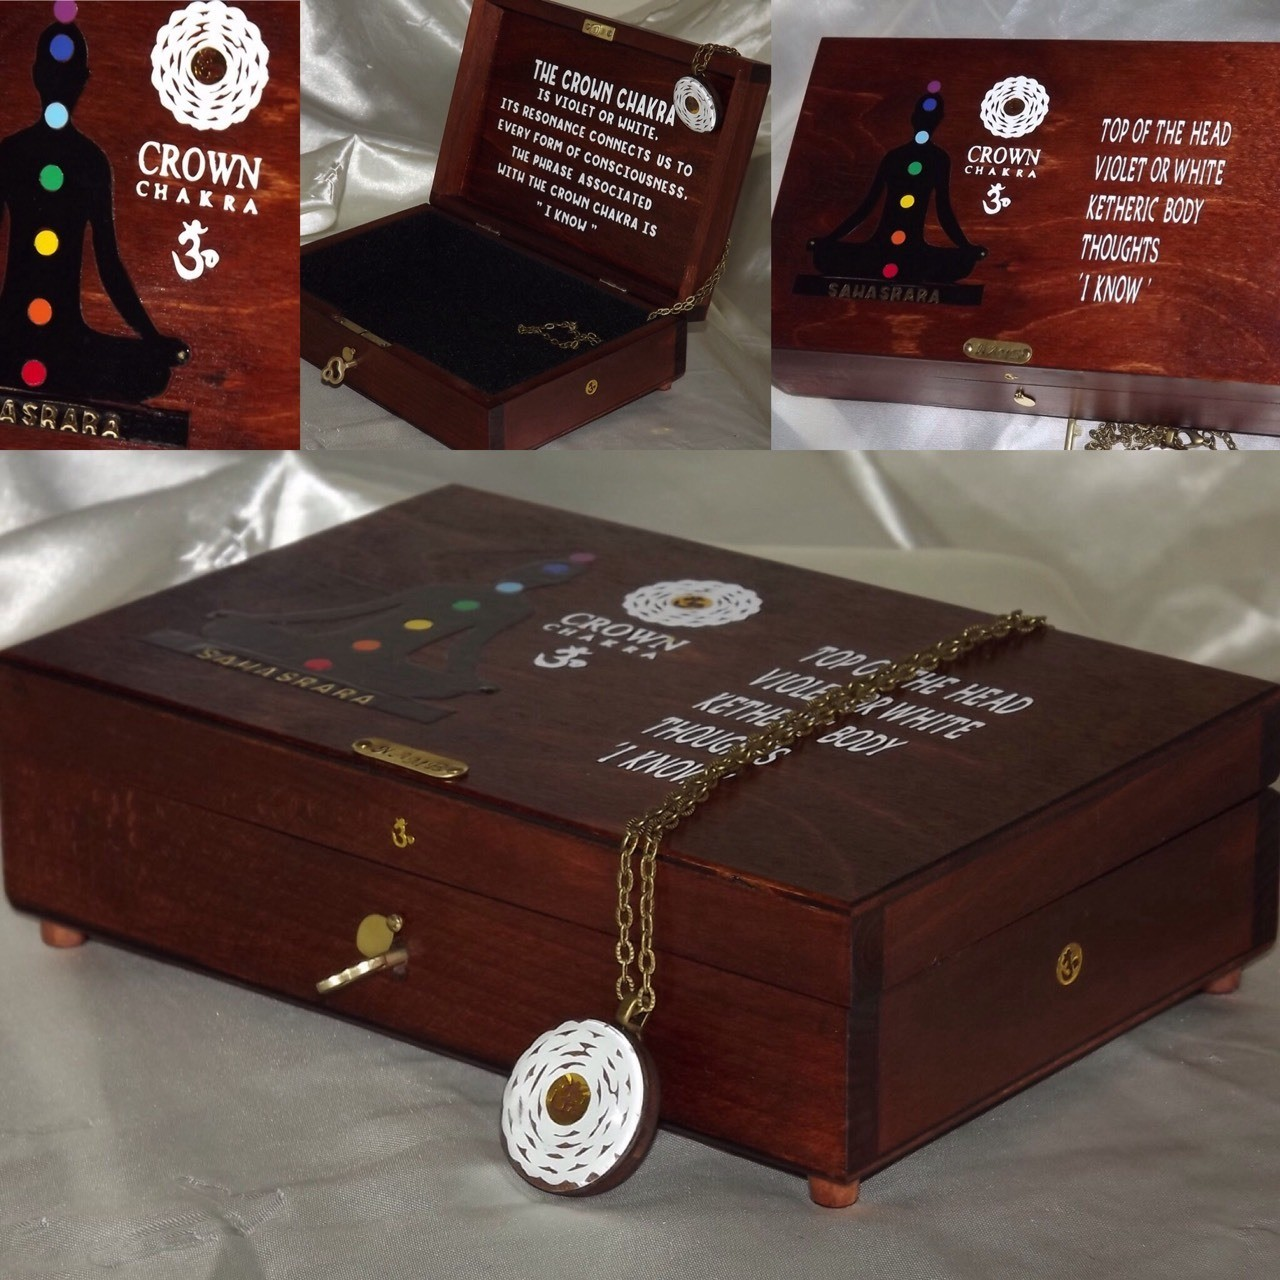 An AWESOME CROWN CHAKRA WOODEN LOCK BOX with a matching WALL PLAQUE and Crown Chakra PENDANT.